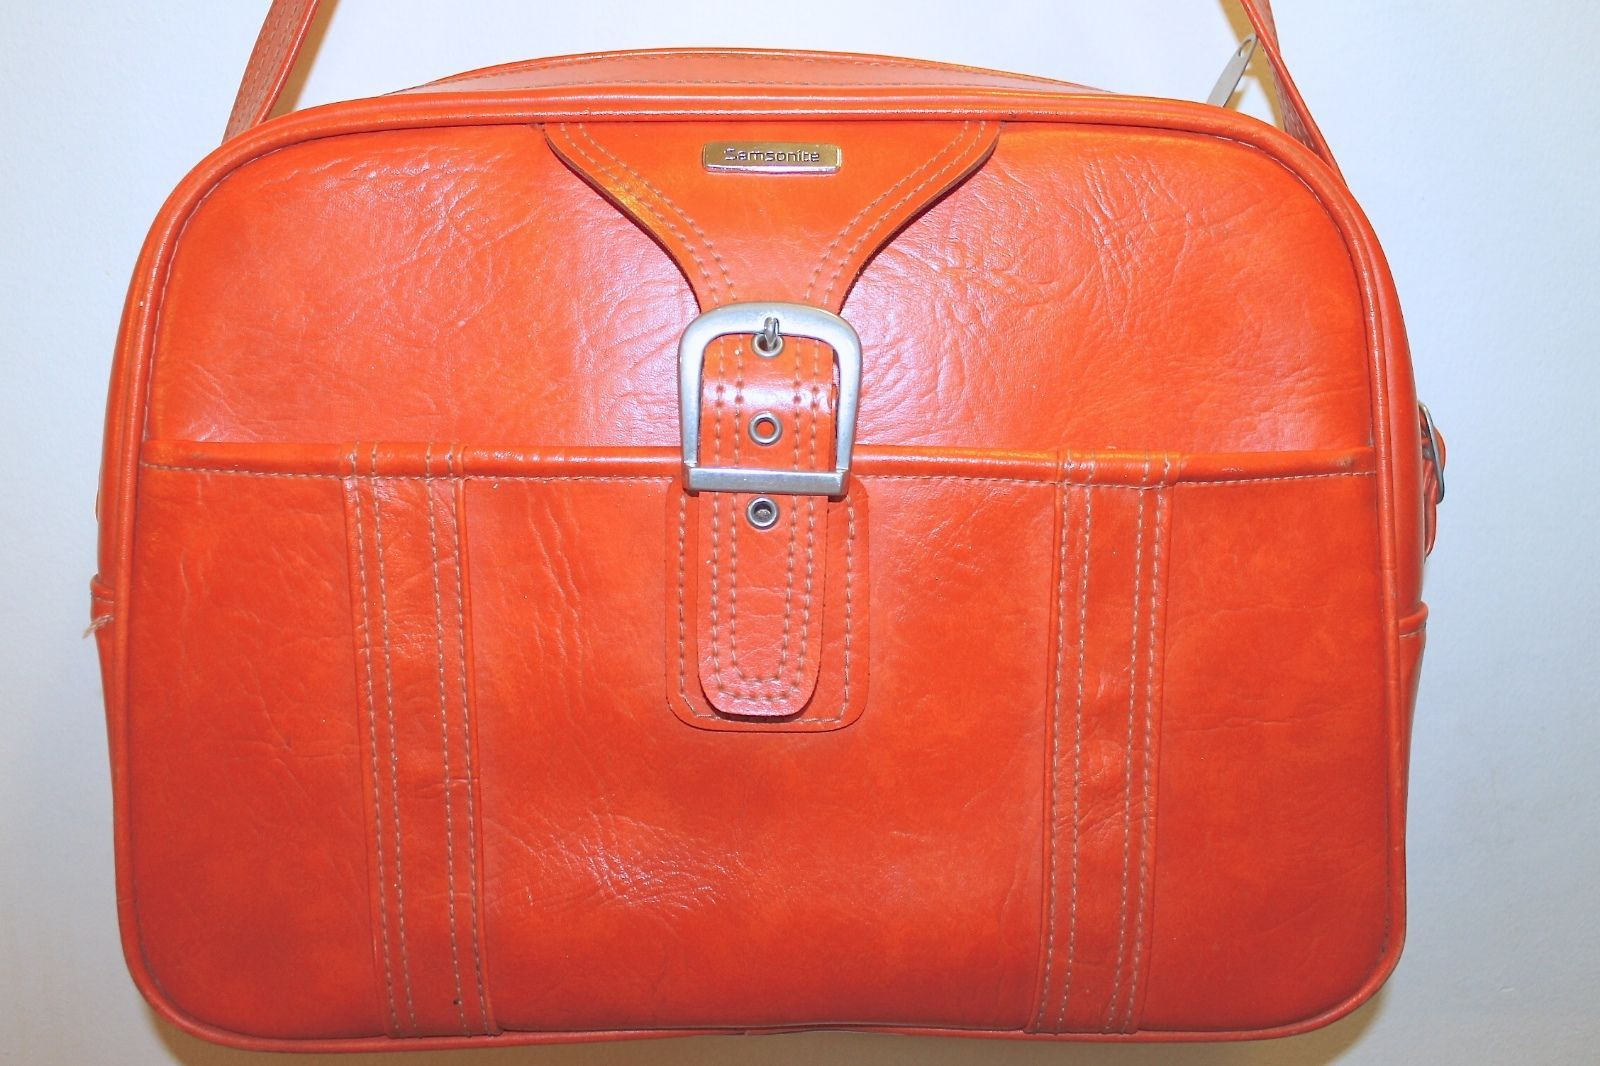 Vintage SAMSONITE Suitcase Carryon/ Overnight  Bag, Orange